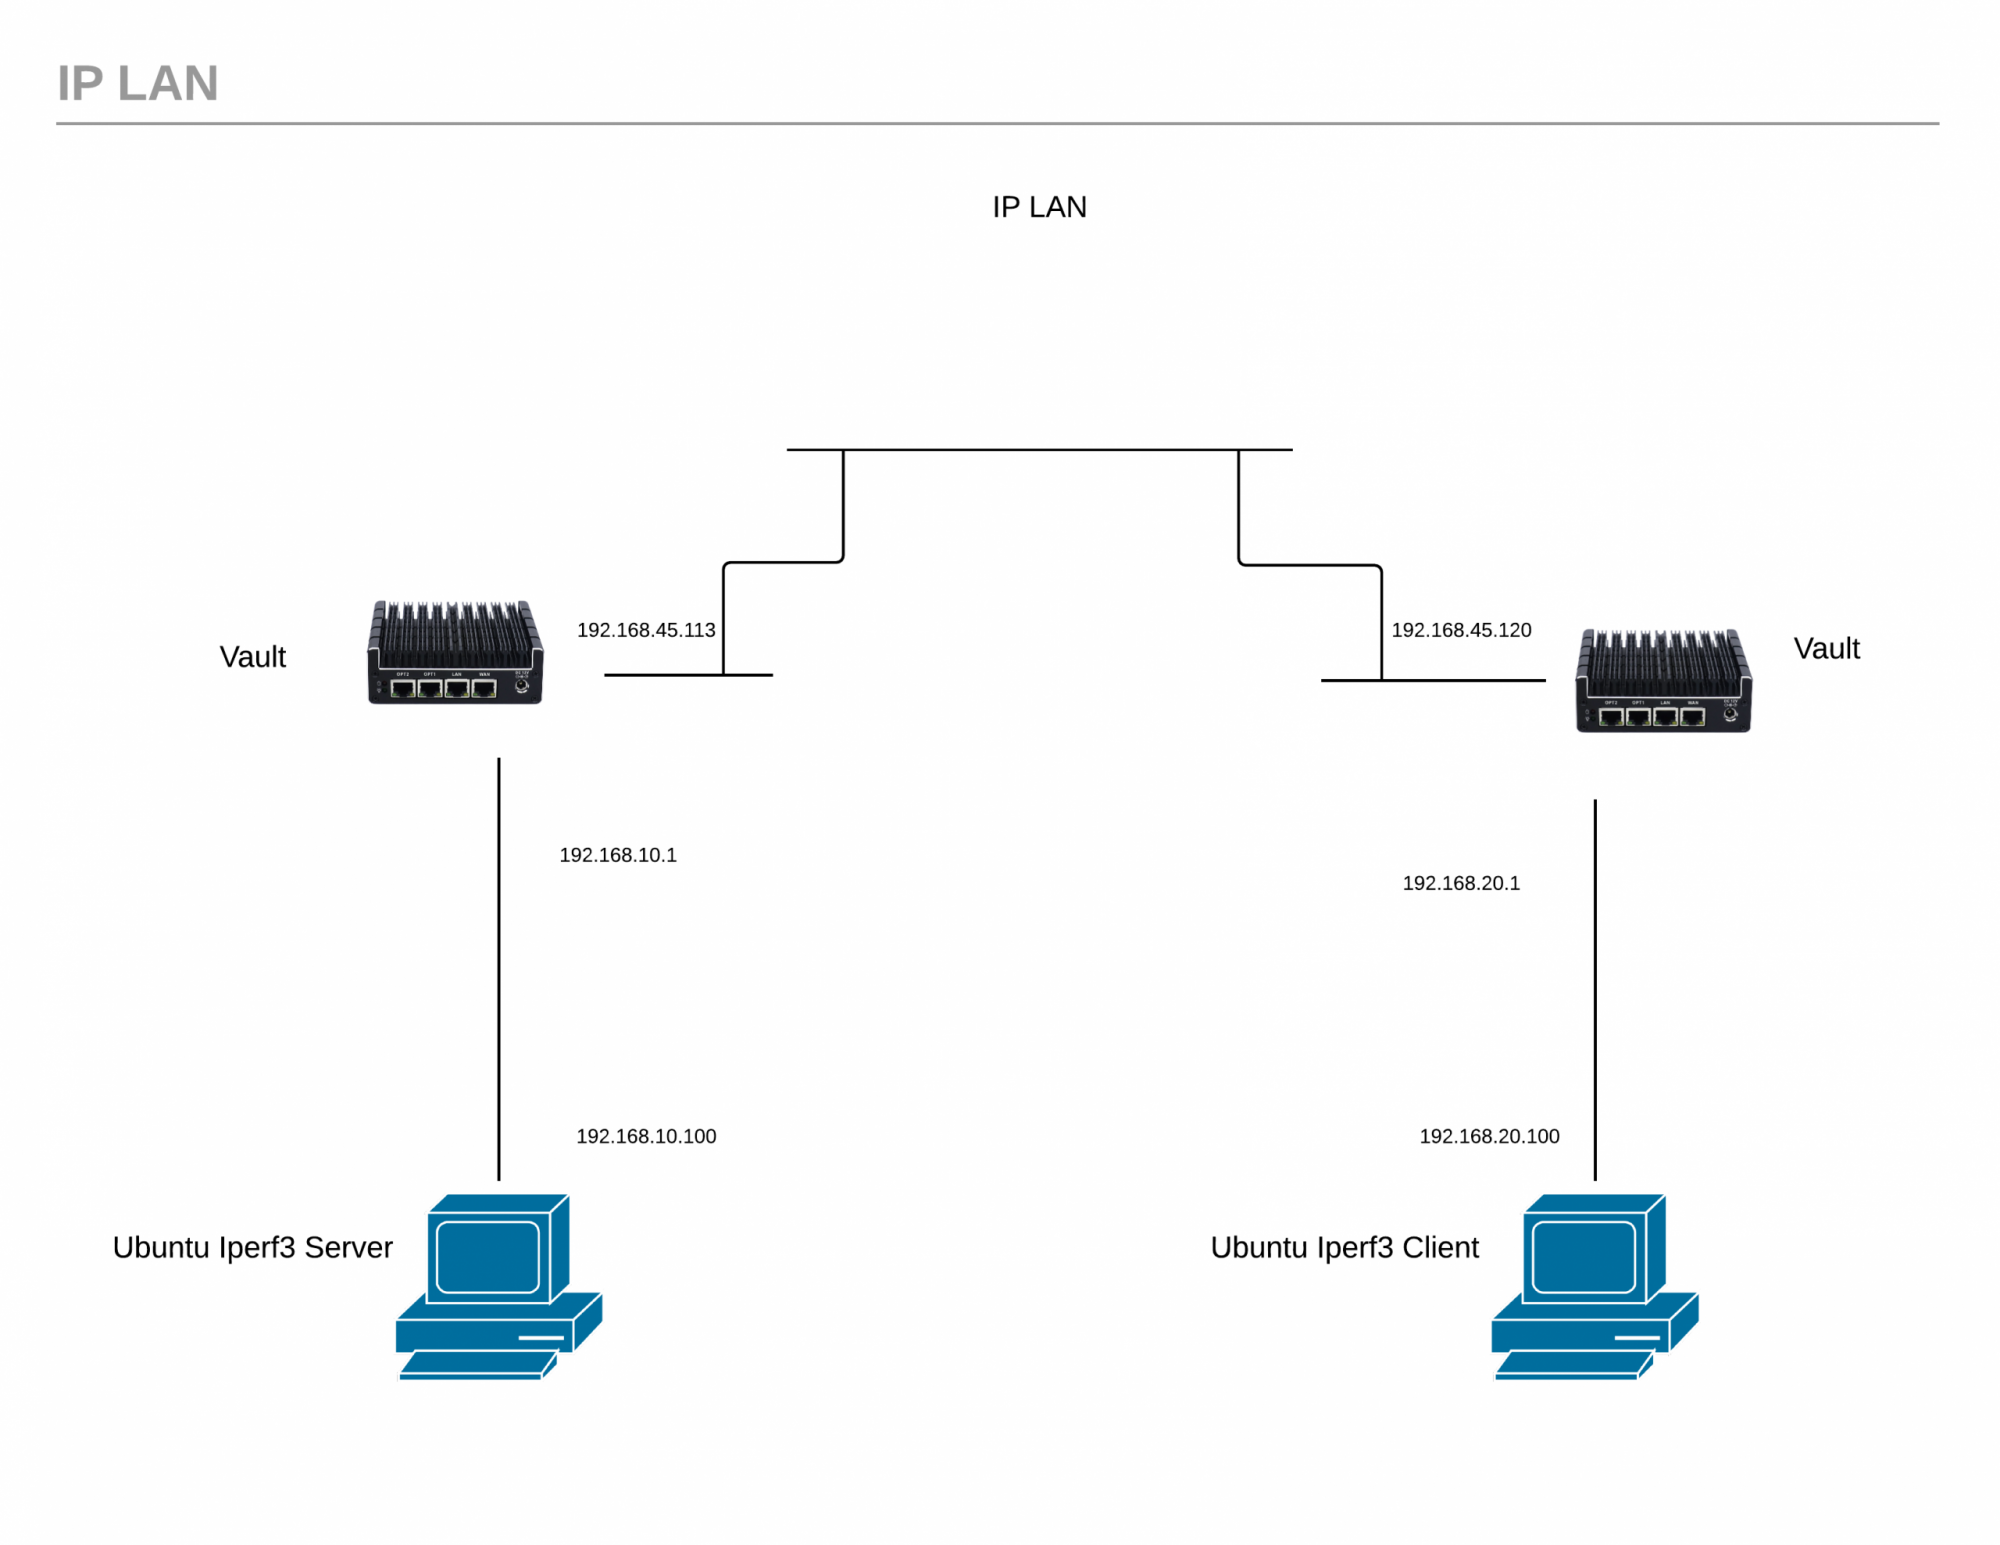 IP LAN diagram